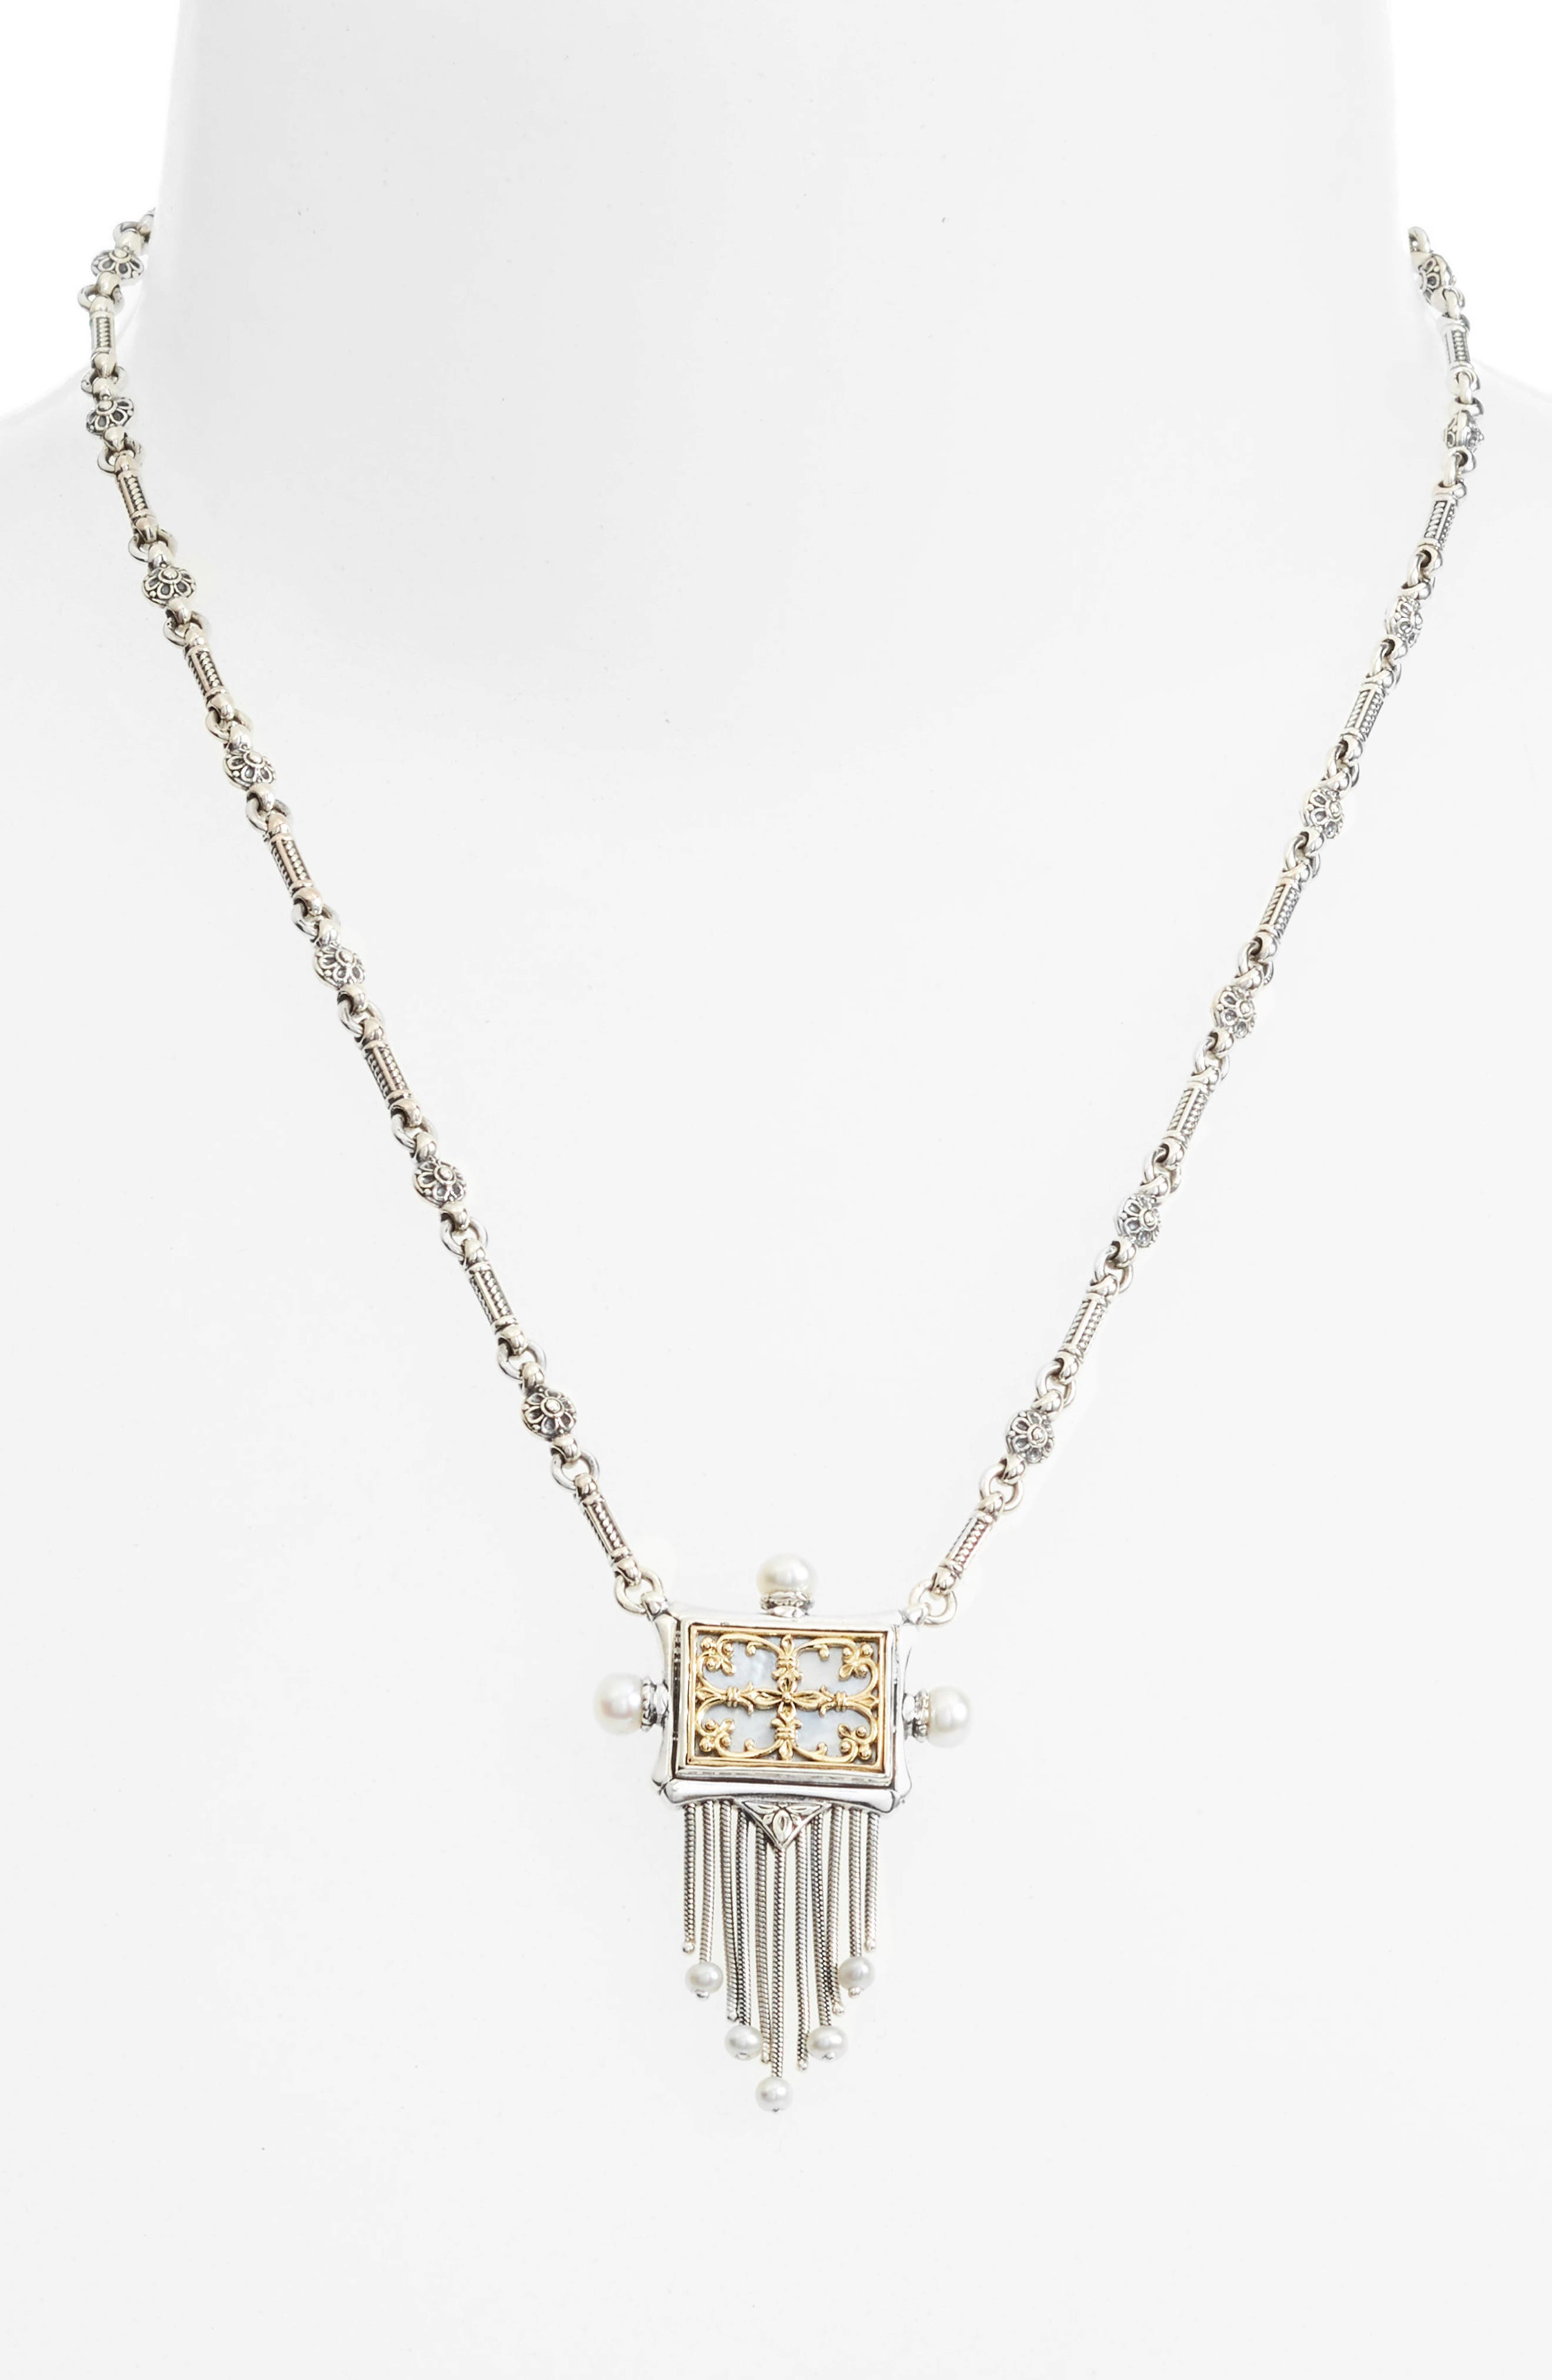 Etched Sterling Silver & Pearl Fringe Pendant,                             Alternate thumbnail 2, color,                             Silver/ Gold/ White